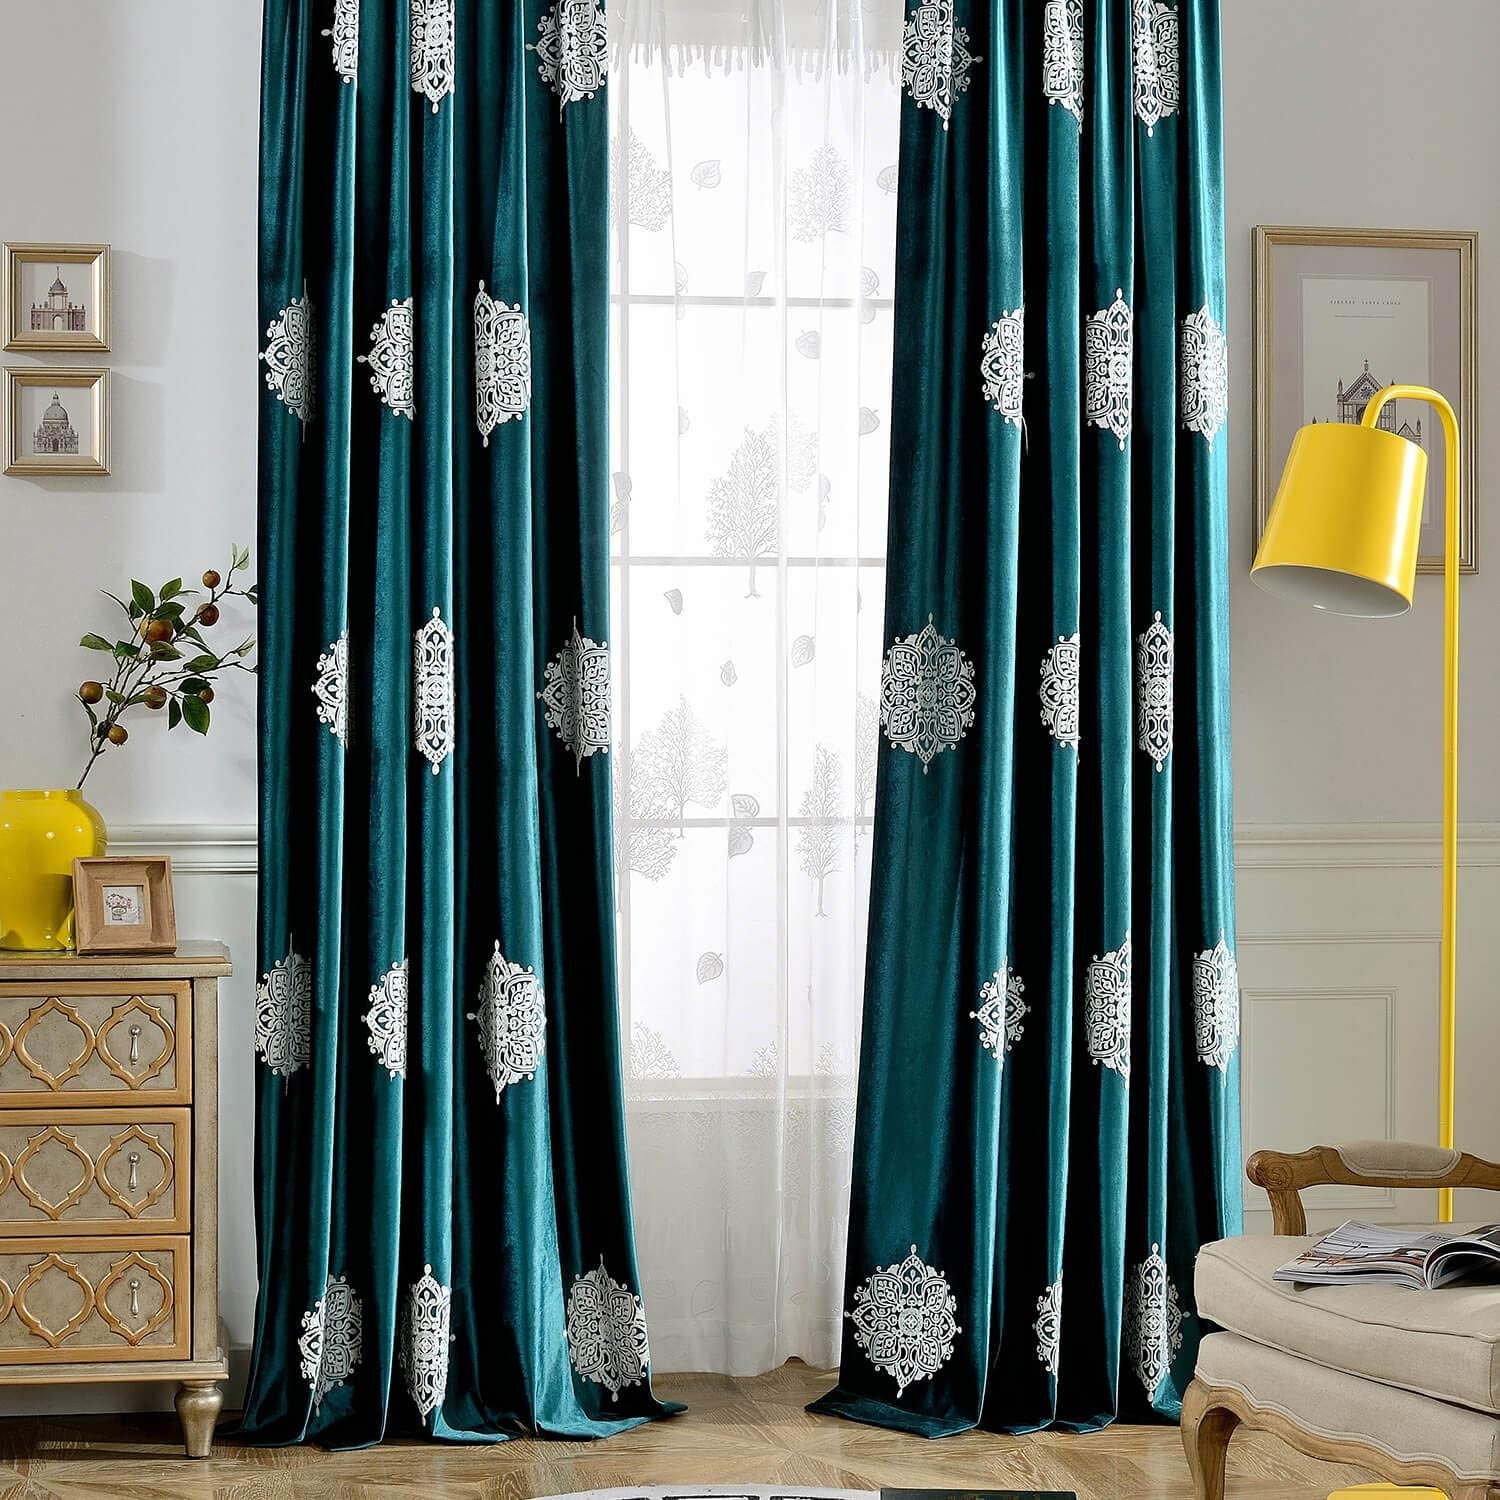 VOGOL 2 Pieces Detroit Mall Flower Embroidered Limited time cheap sale Luxury Curtains Velvet Soft B